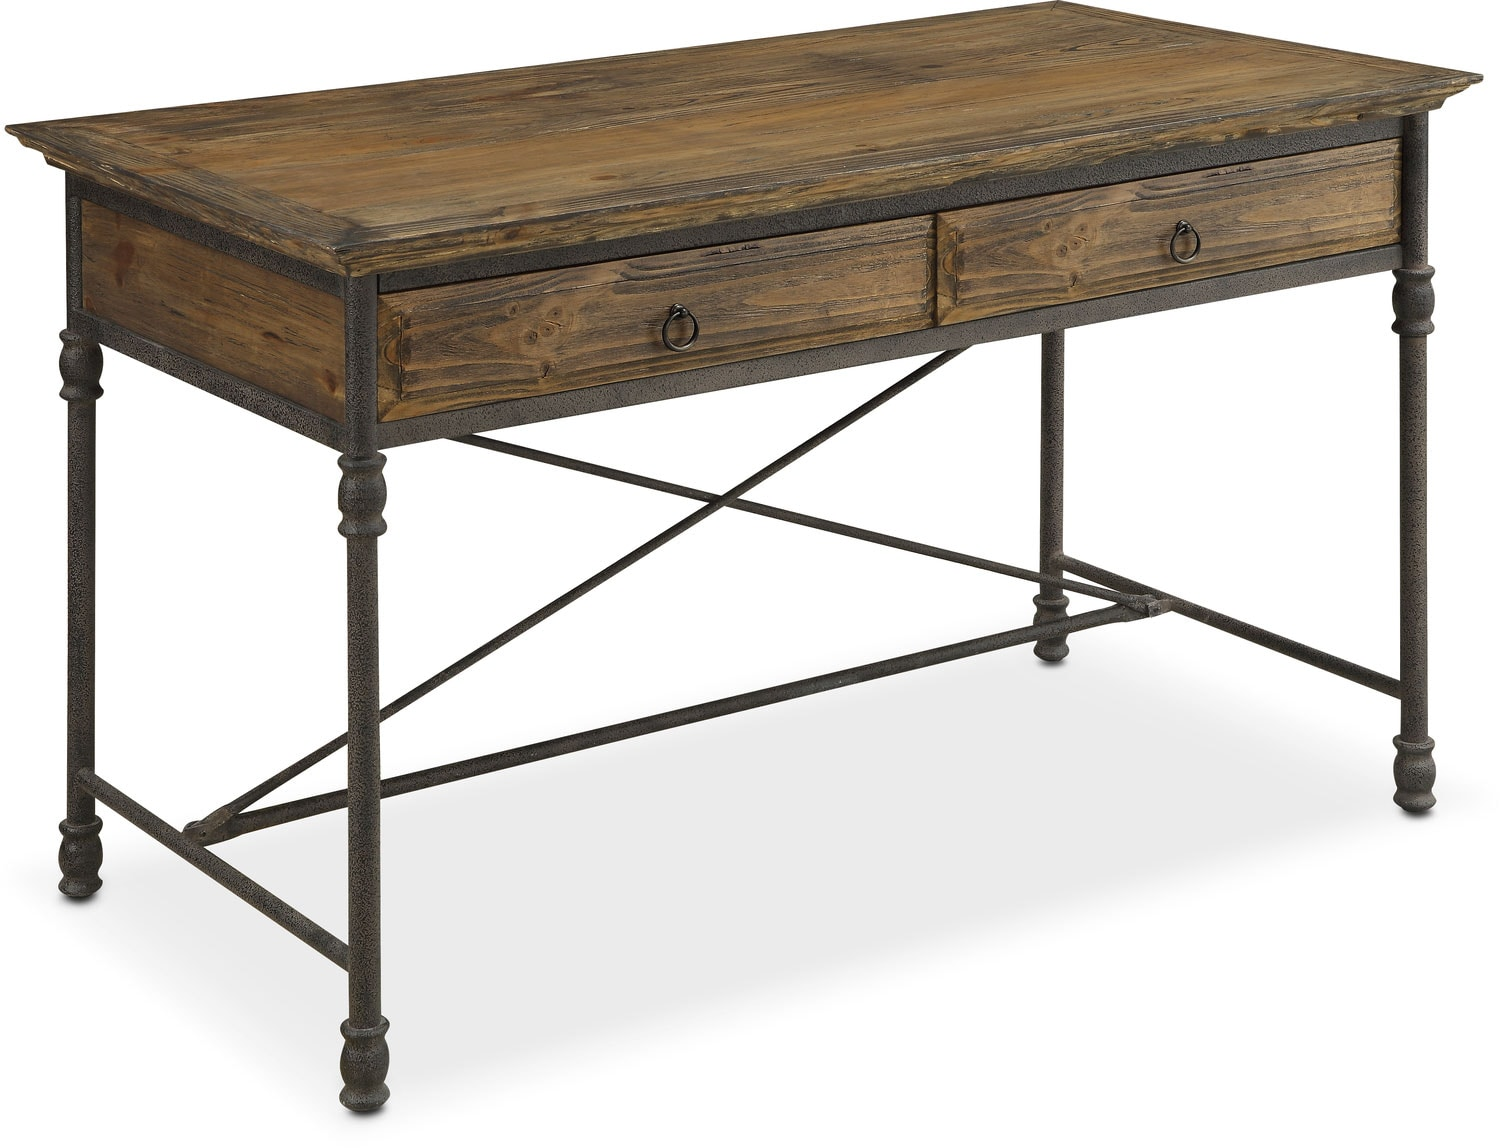 Home Office Furniture - Bedford Desk - Pine